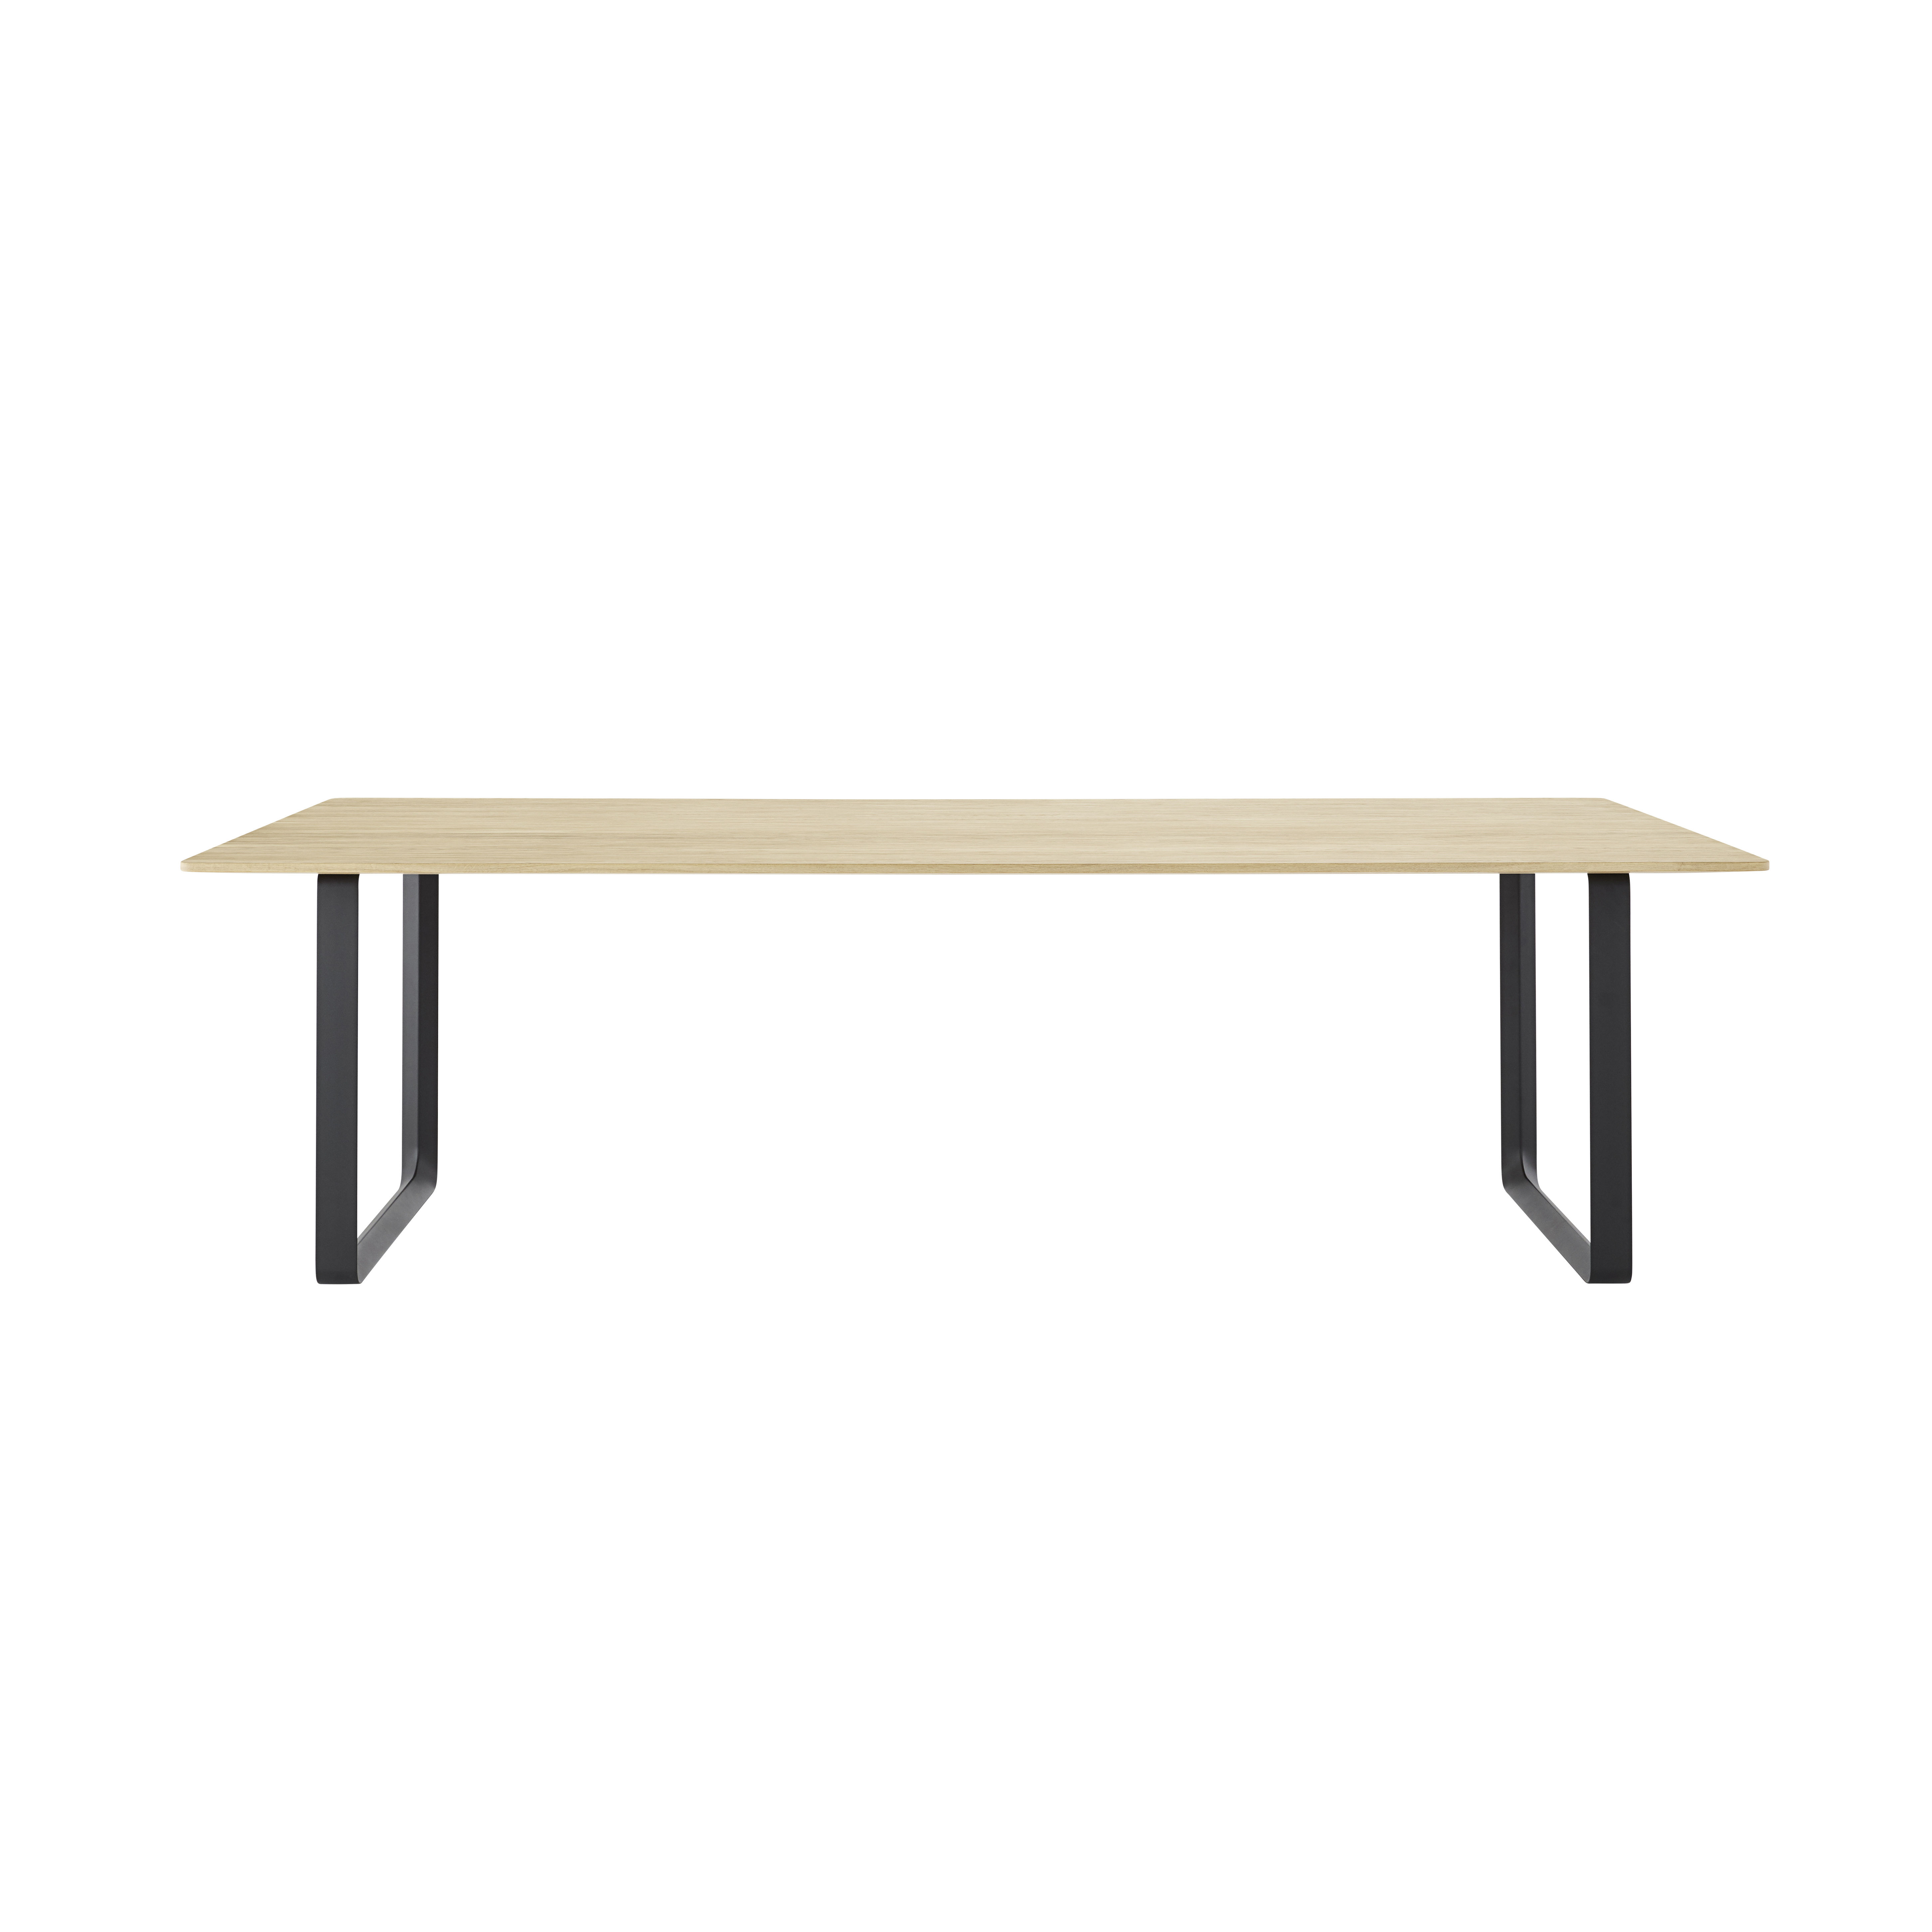 Trends - Home sweet home - 70-70 XL Rectangular table - / 255 x 108 cm - Solid oak by Muuto - Solid oak / Black base - Painted cast aluminium, Solid oak